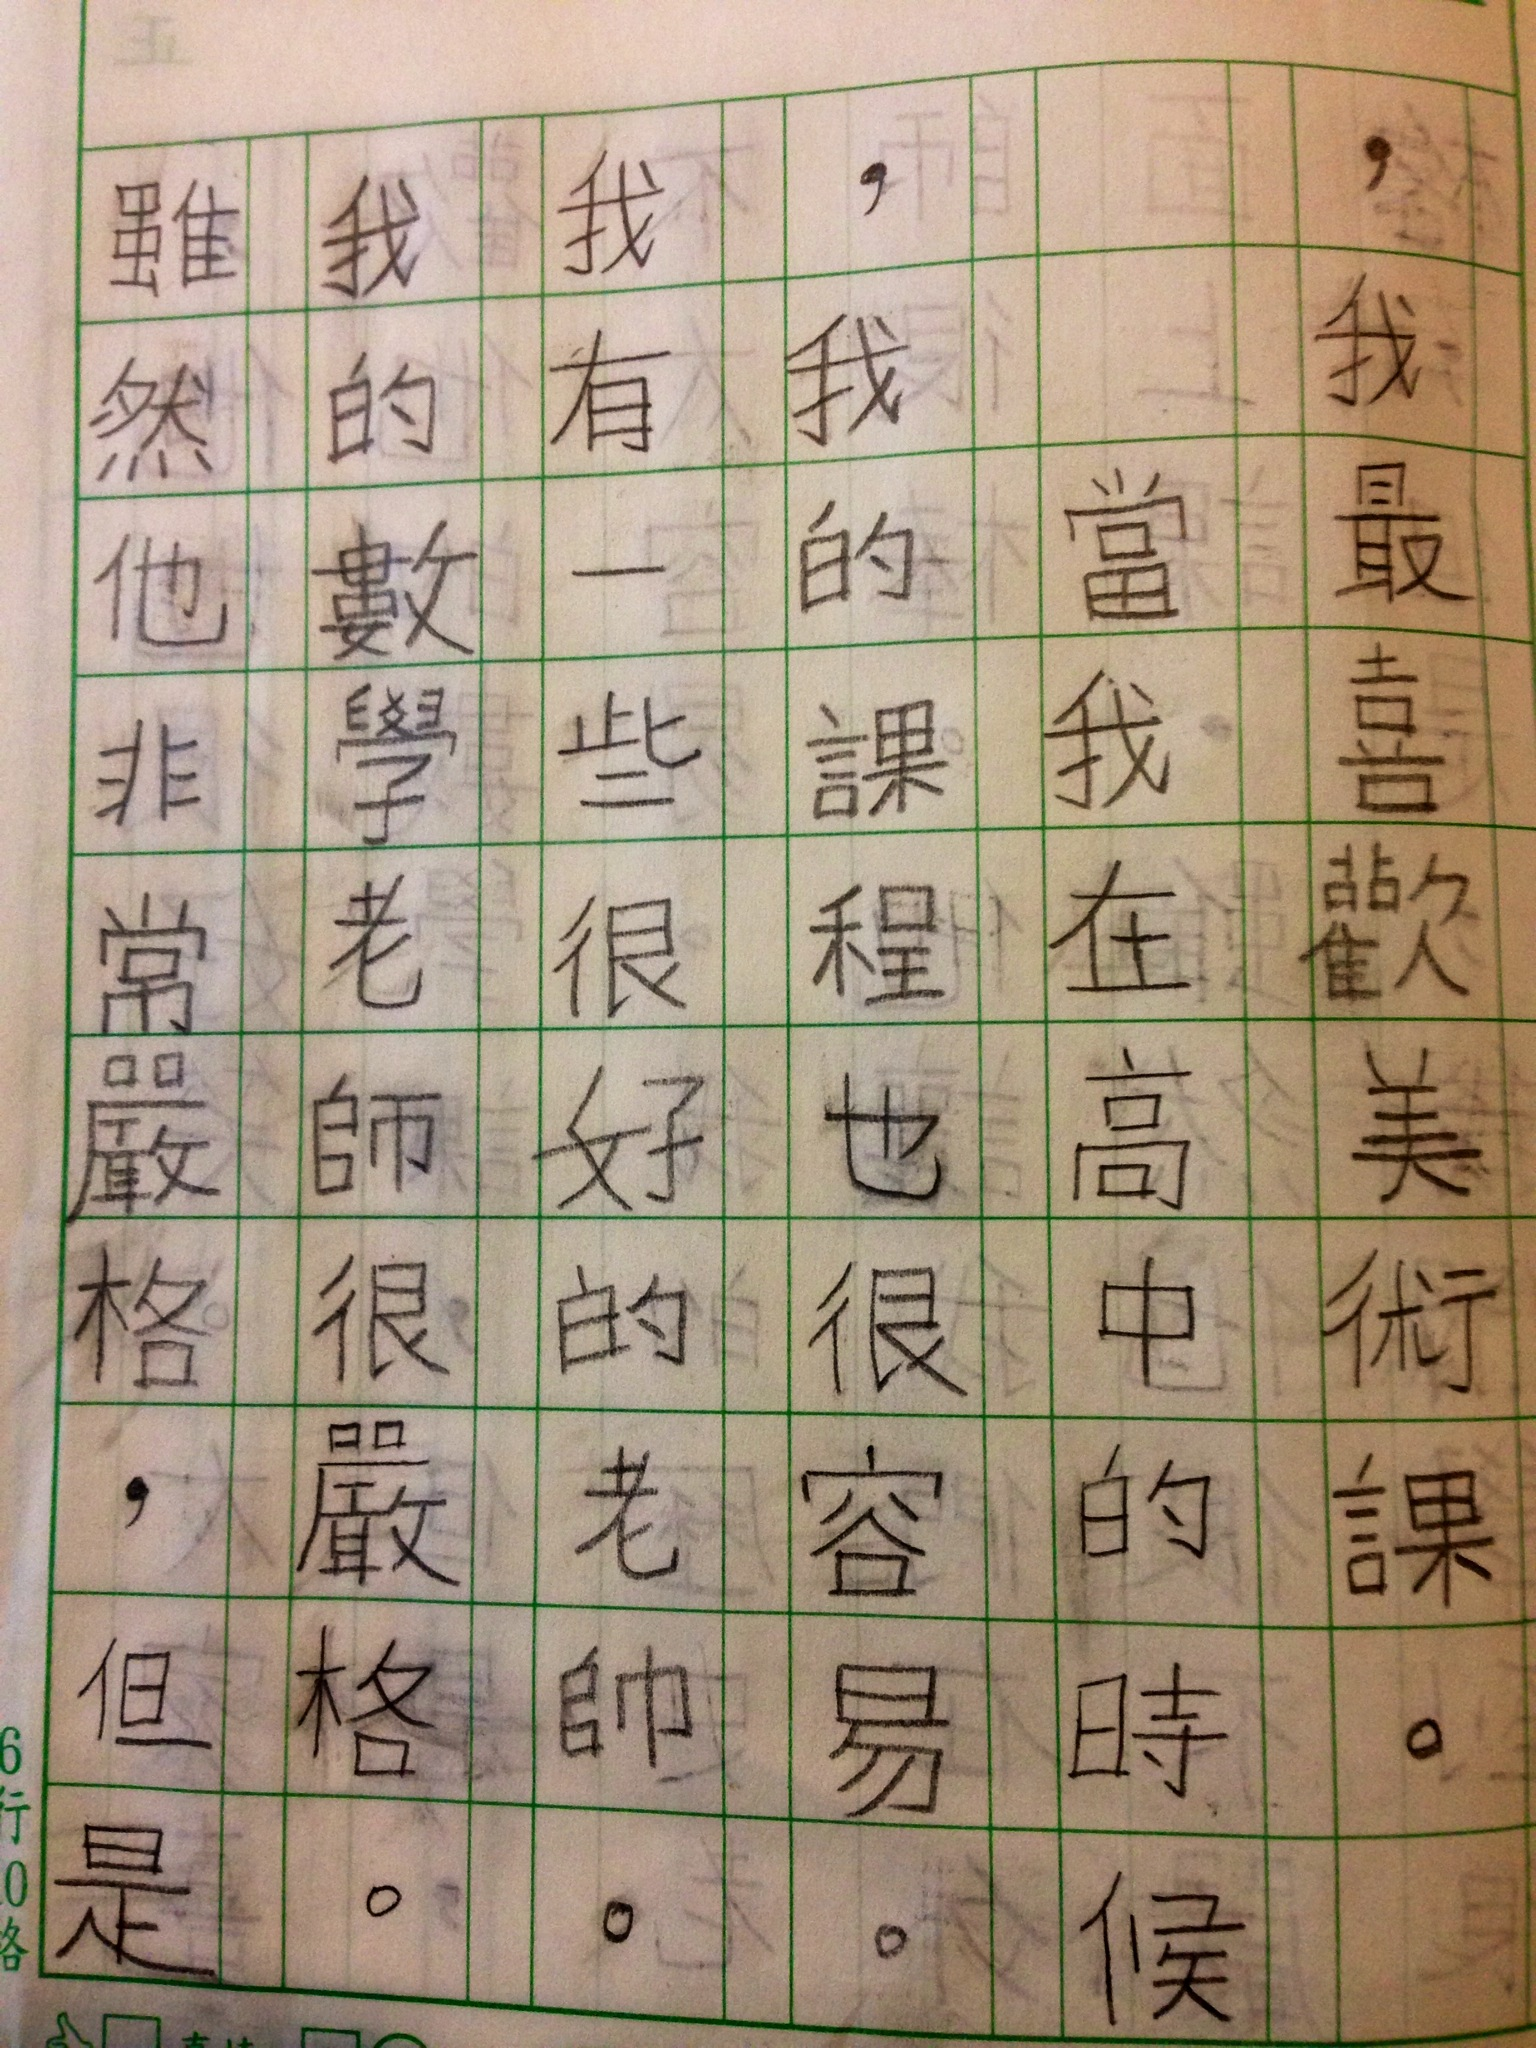 okay here it is my first essay in chinese language boat a sample of my childlike handwritten chinese essay